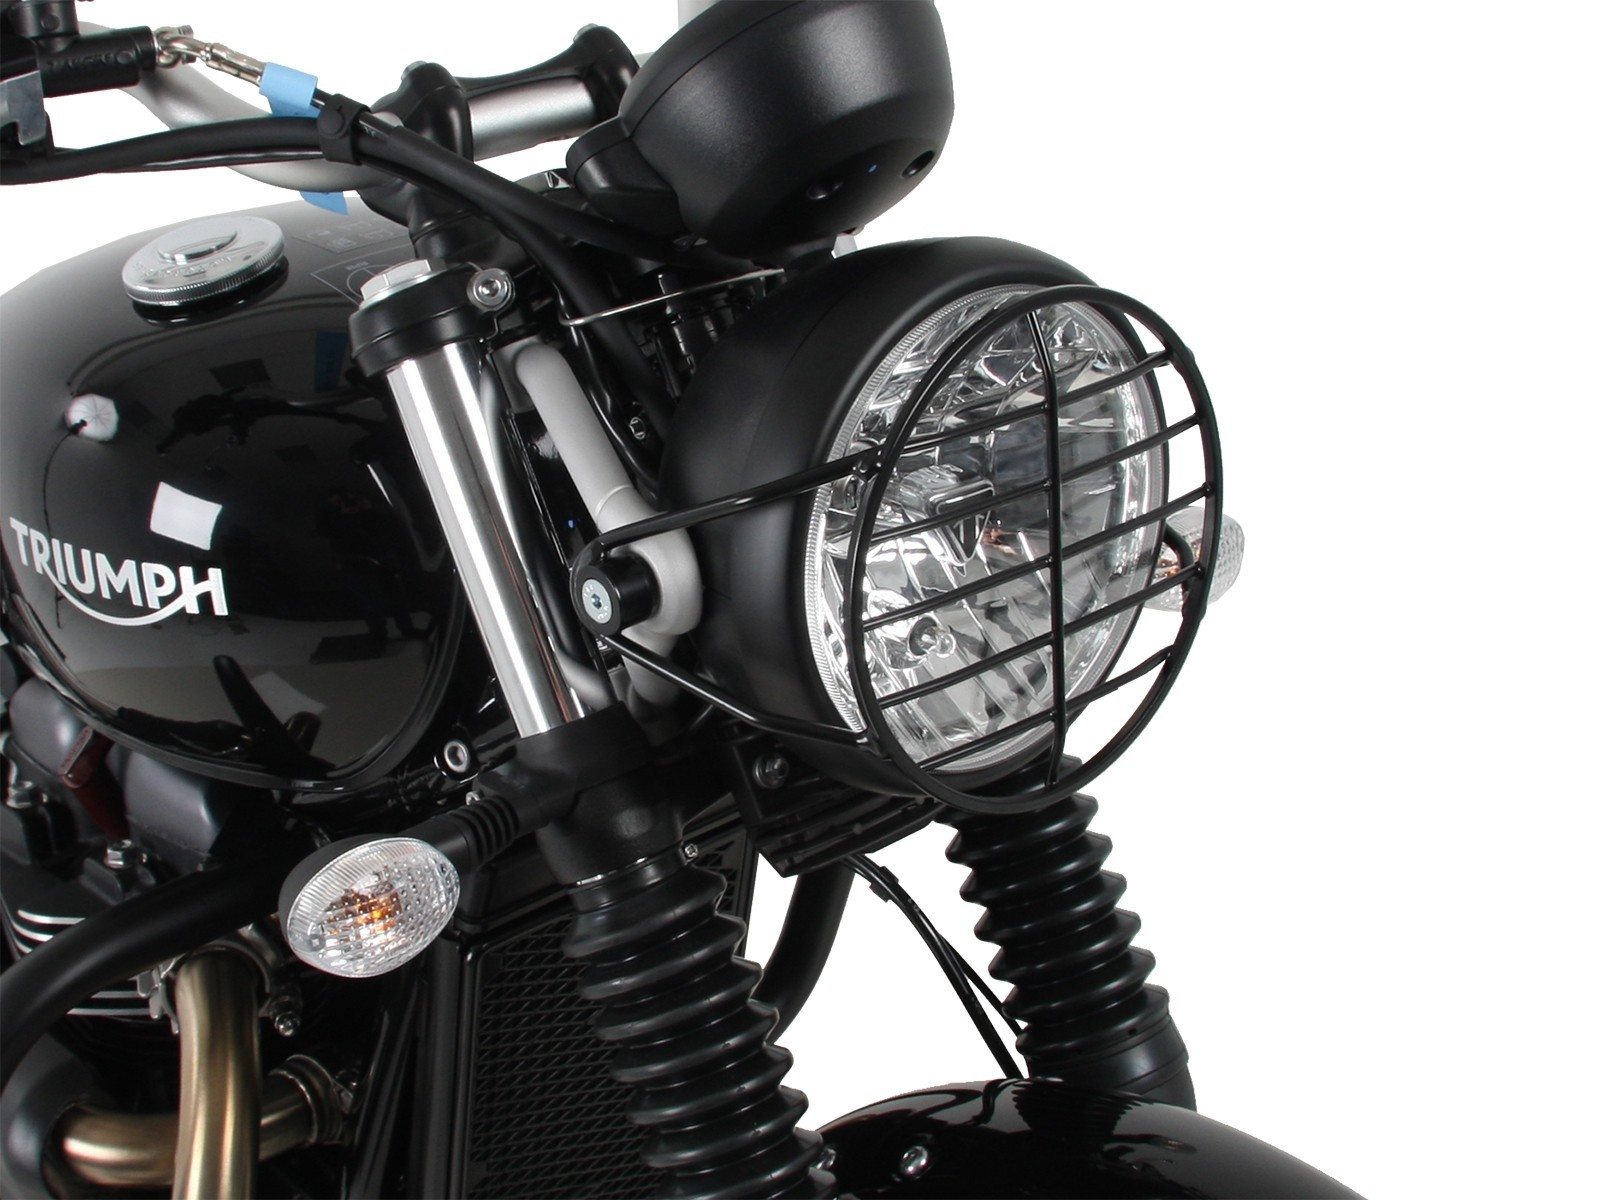 STREET TWIN STREET SCRAMBLER BLACK METAL HEADLIGHT GRILL